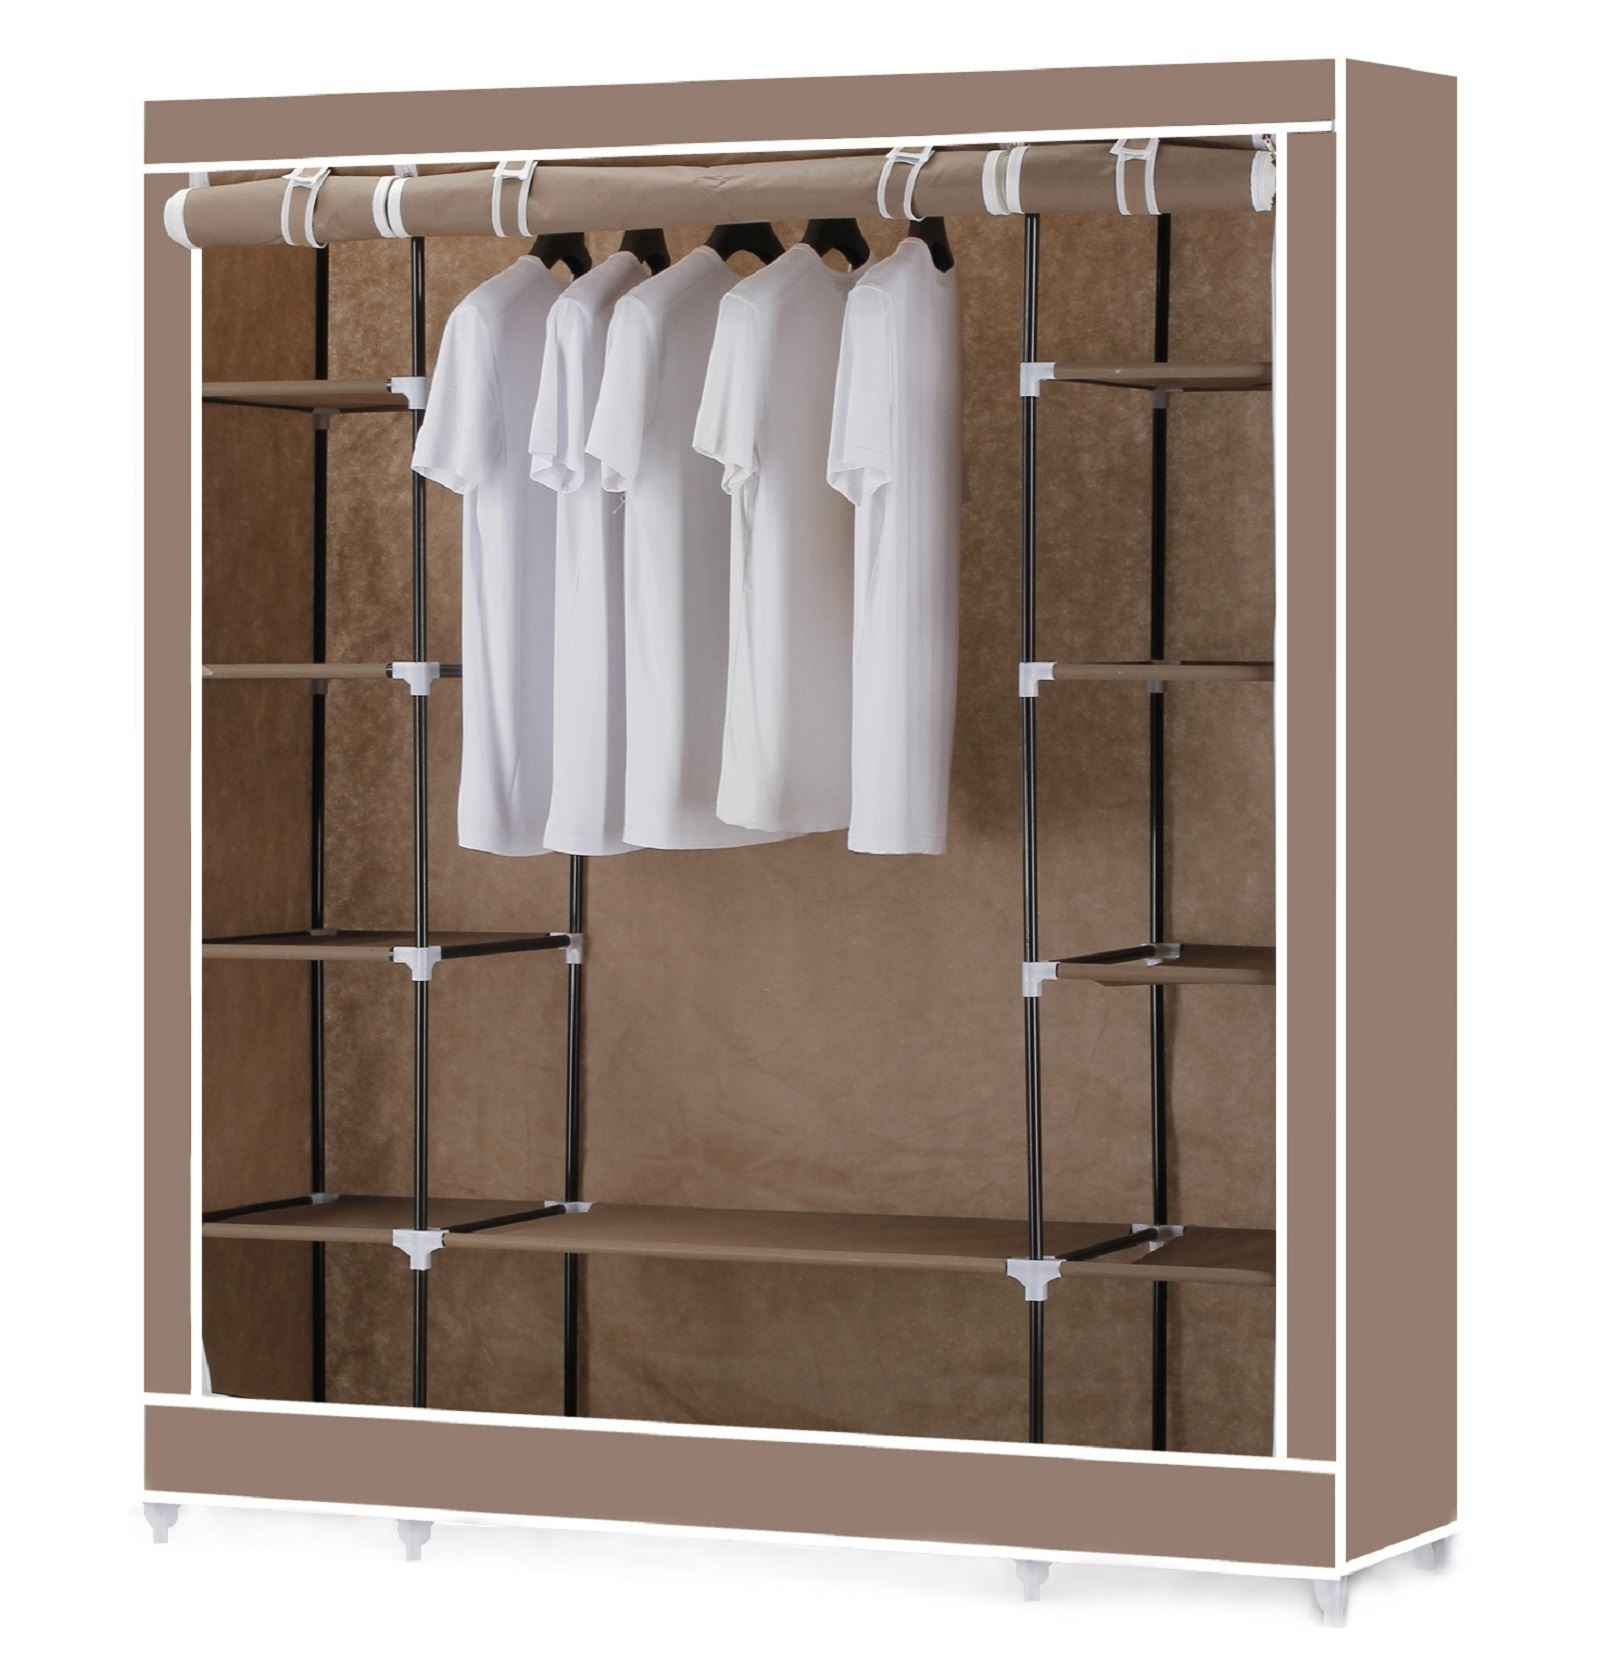 Vinsani Triple Canvas Clothes Wardrobe Hanging Rail With Storage Intended For Current Double Hanging Rail Wardrobes (View 6 of 15)